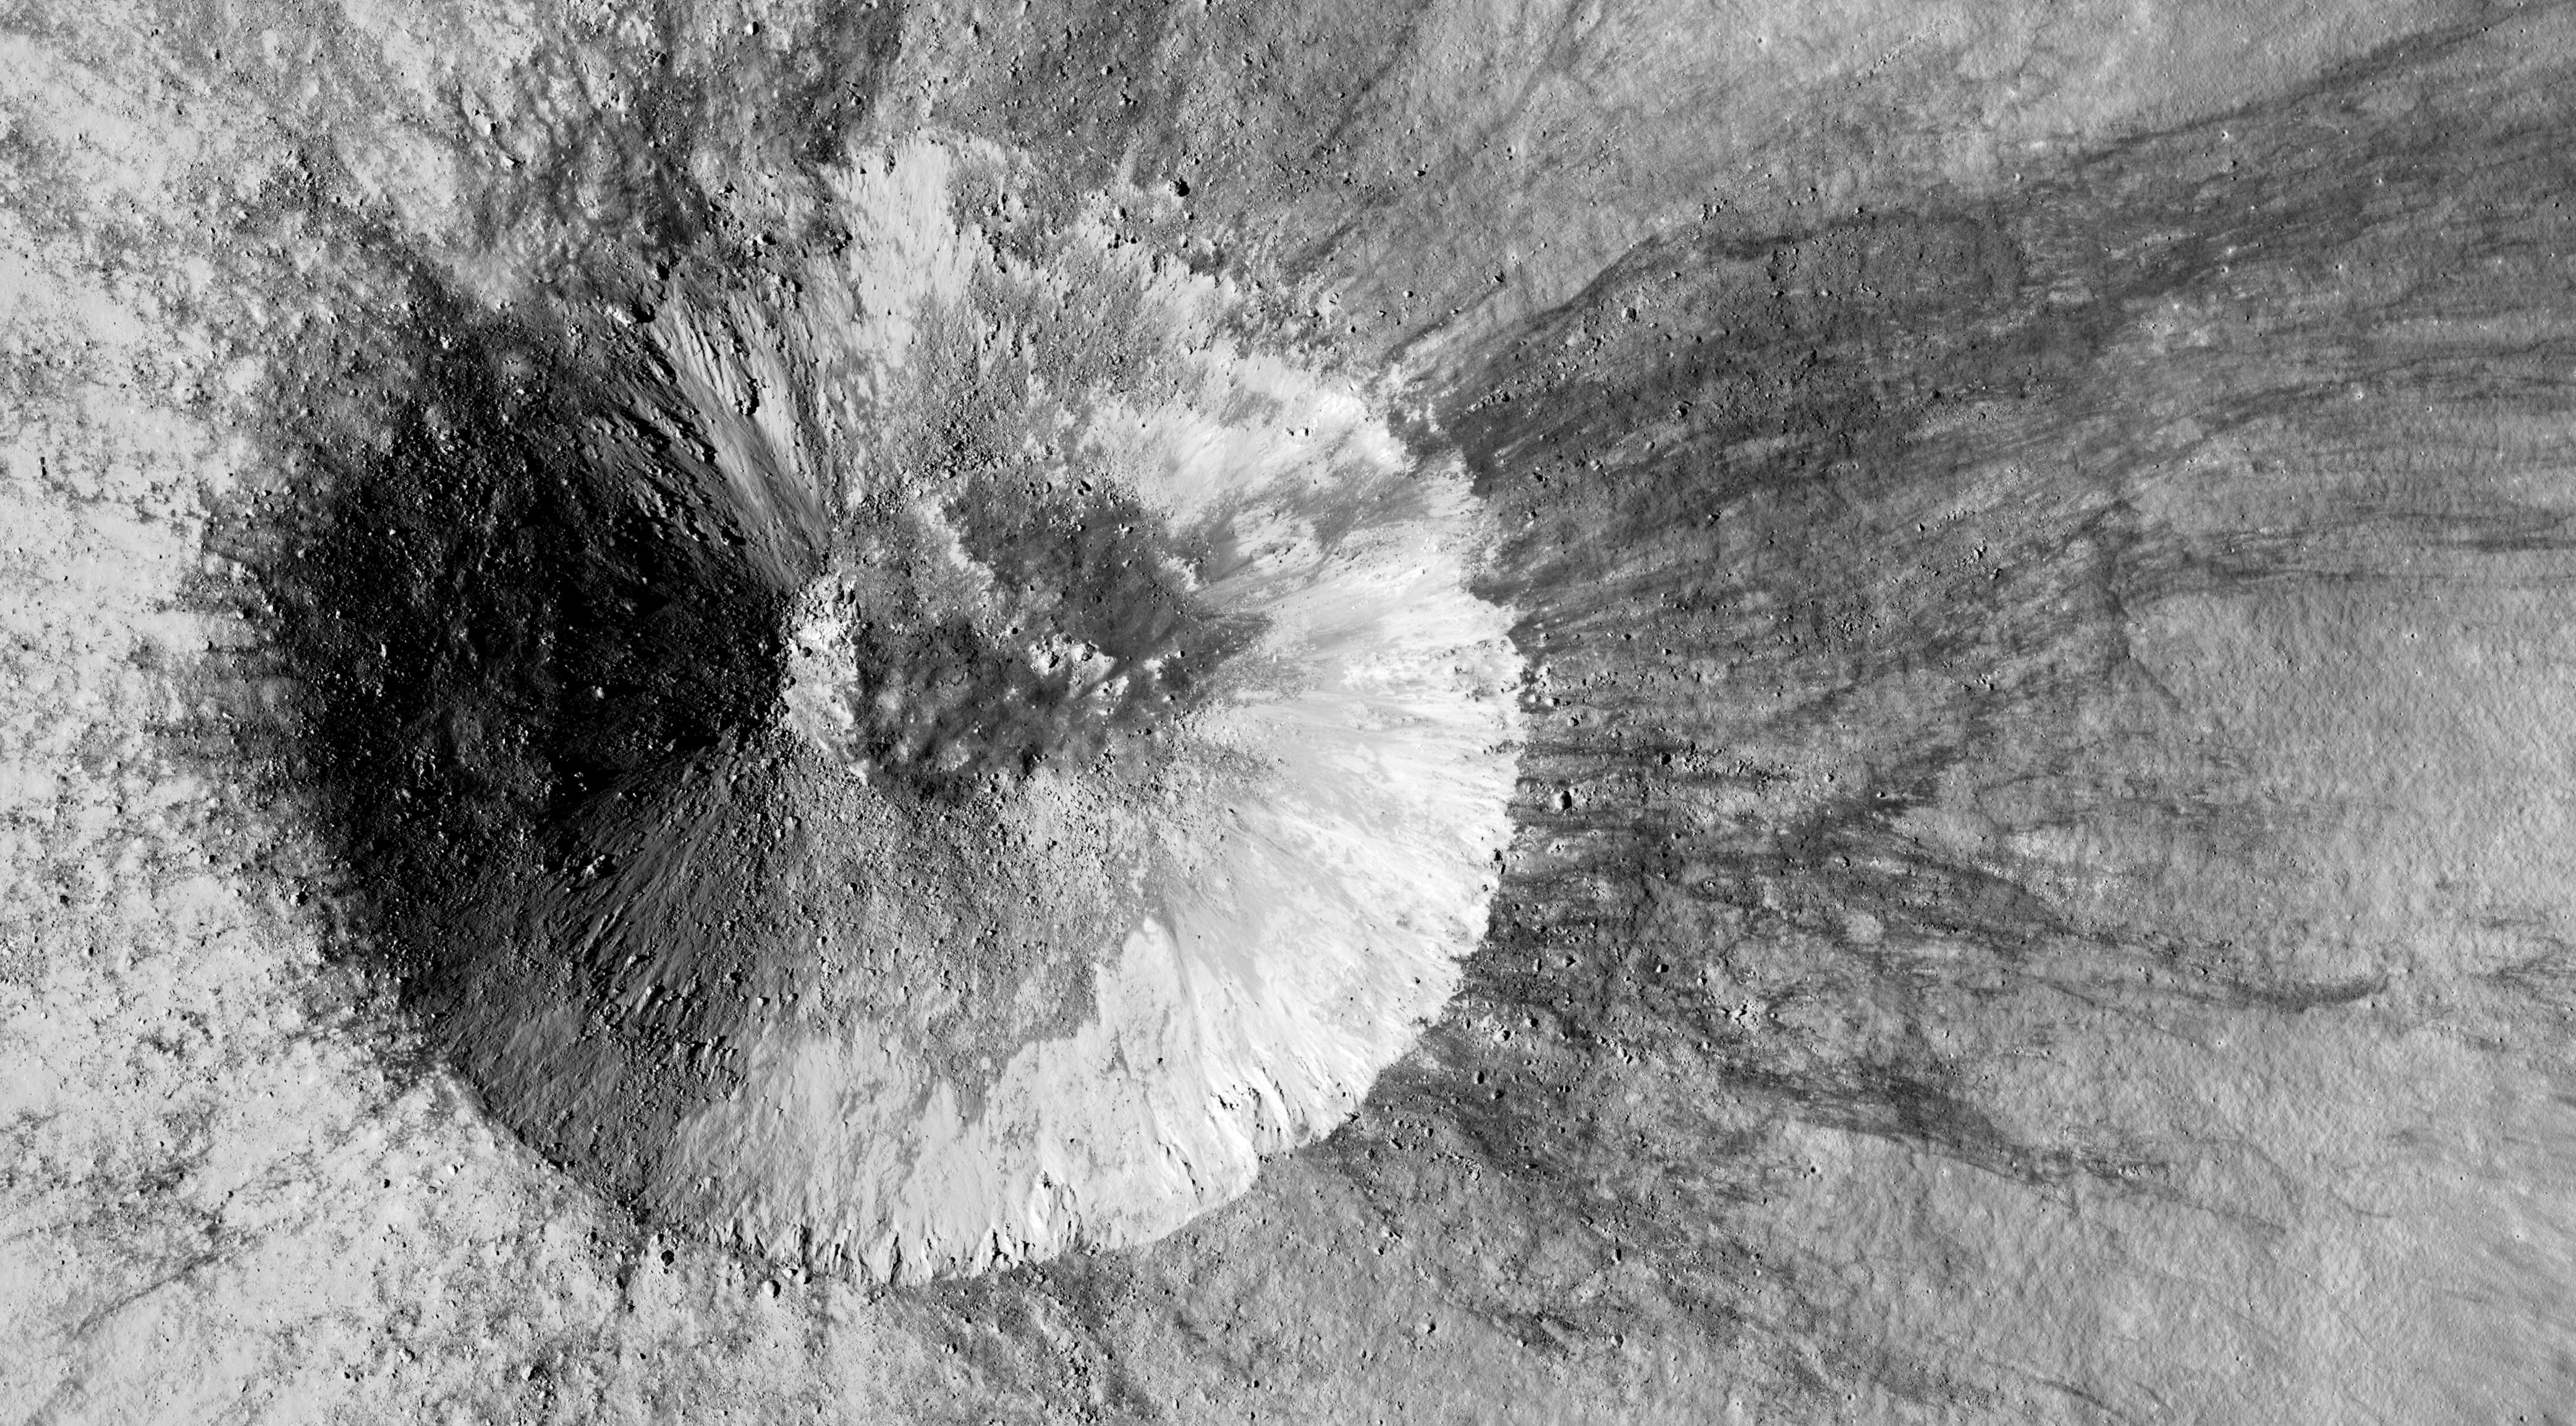 best website f5add 8e761 The science team from Lunar Reconnaissance Orbiter (LRO) today released a  new image, taken on November 3, 2018, of a relatively young small crater  not ...